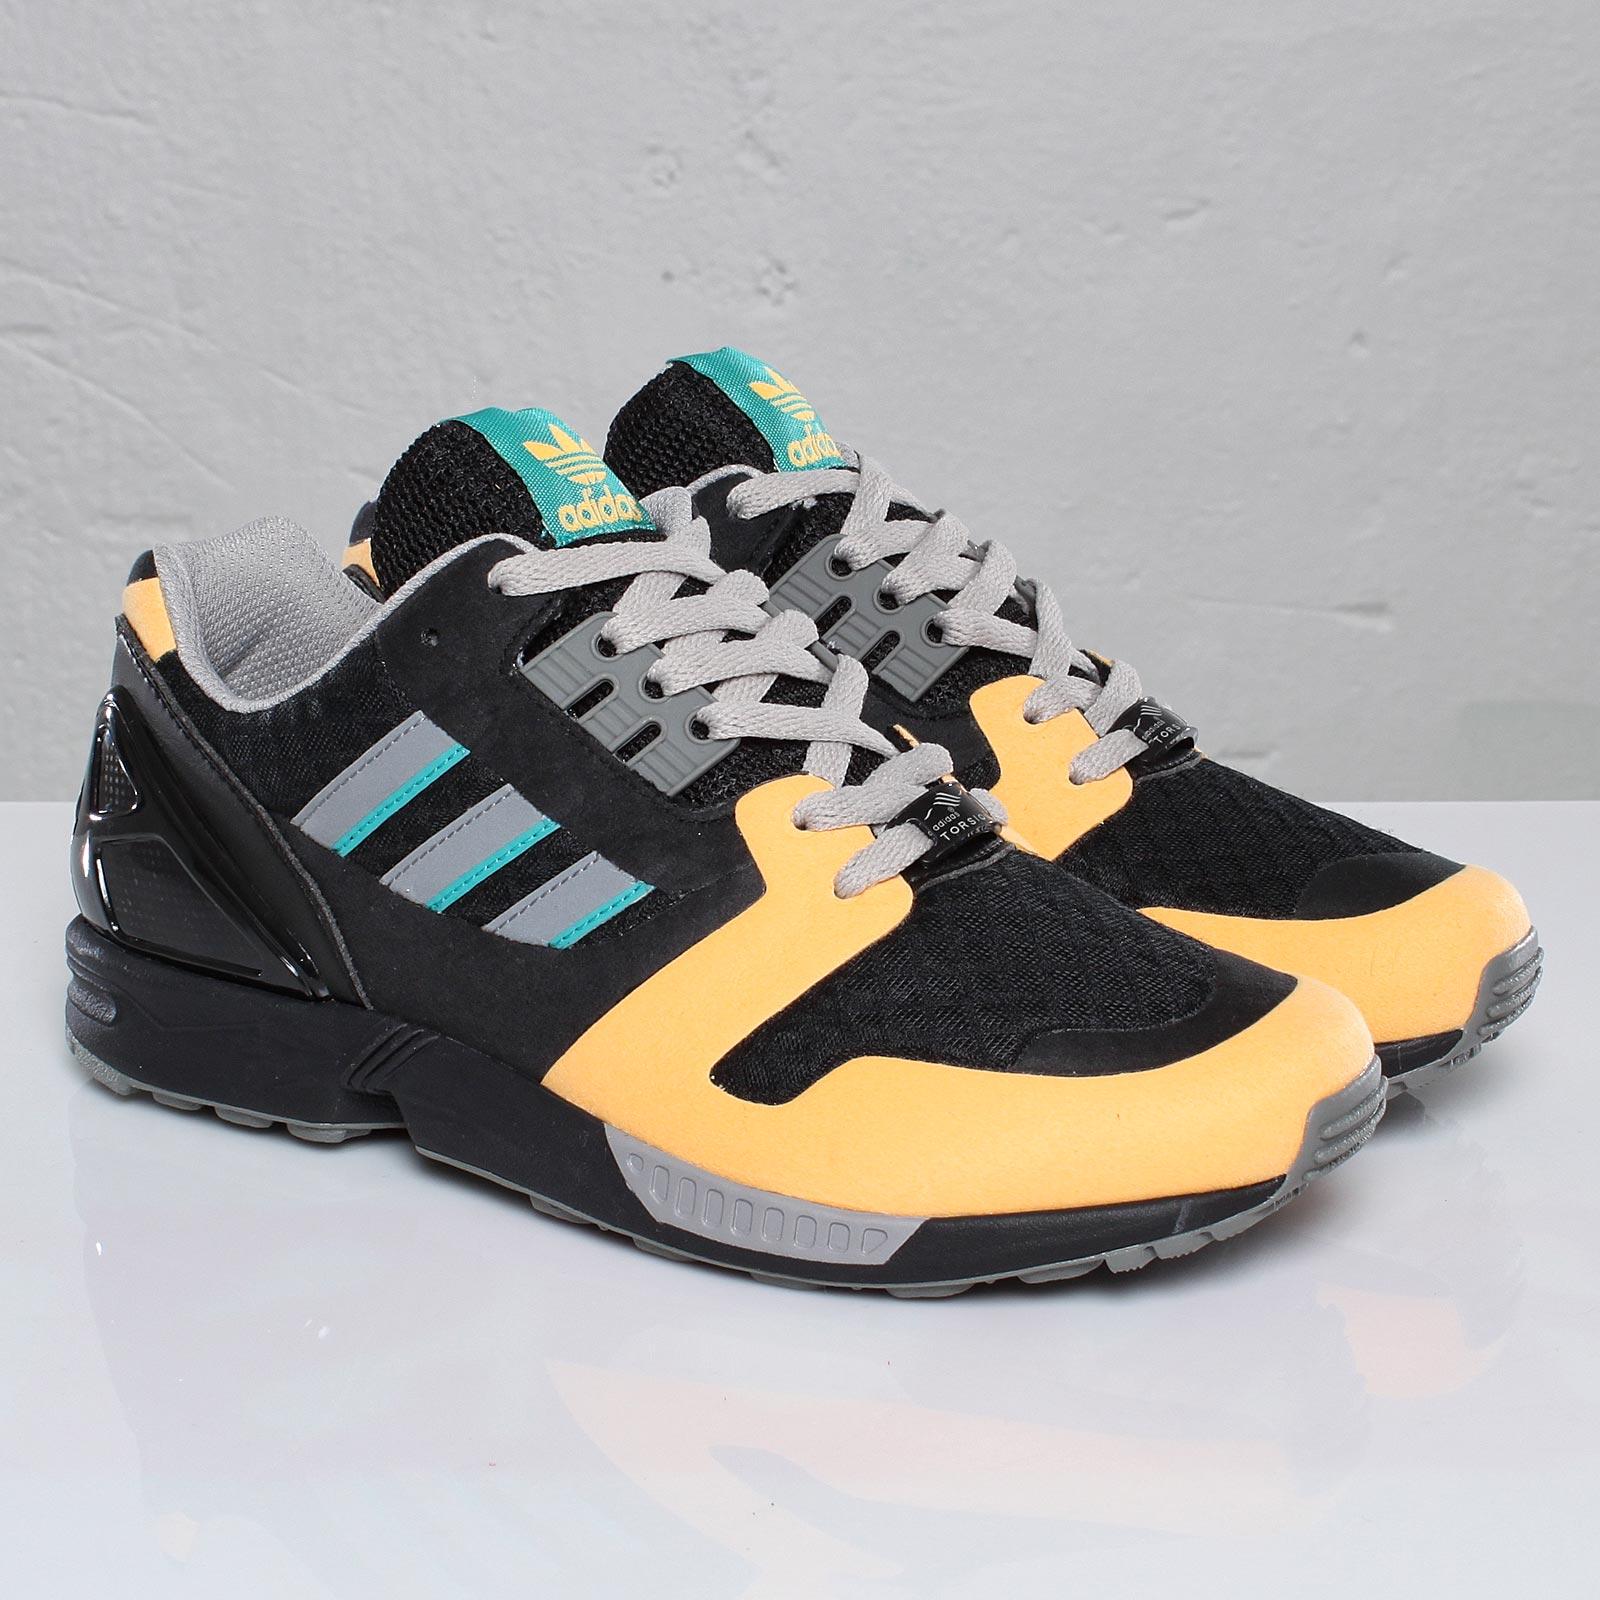 top quality sells outlet store adidas ZX 8000 - 100770 - Sneakersnstuff | sneakers & streetwear ...